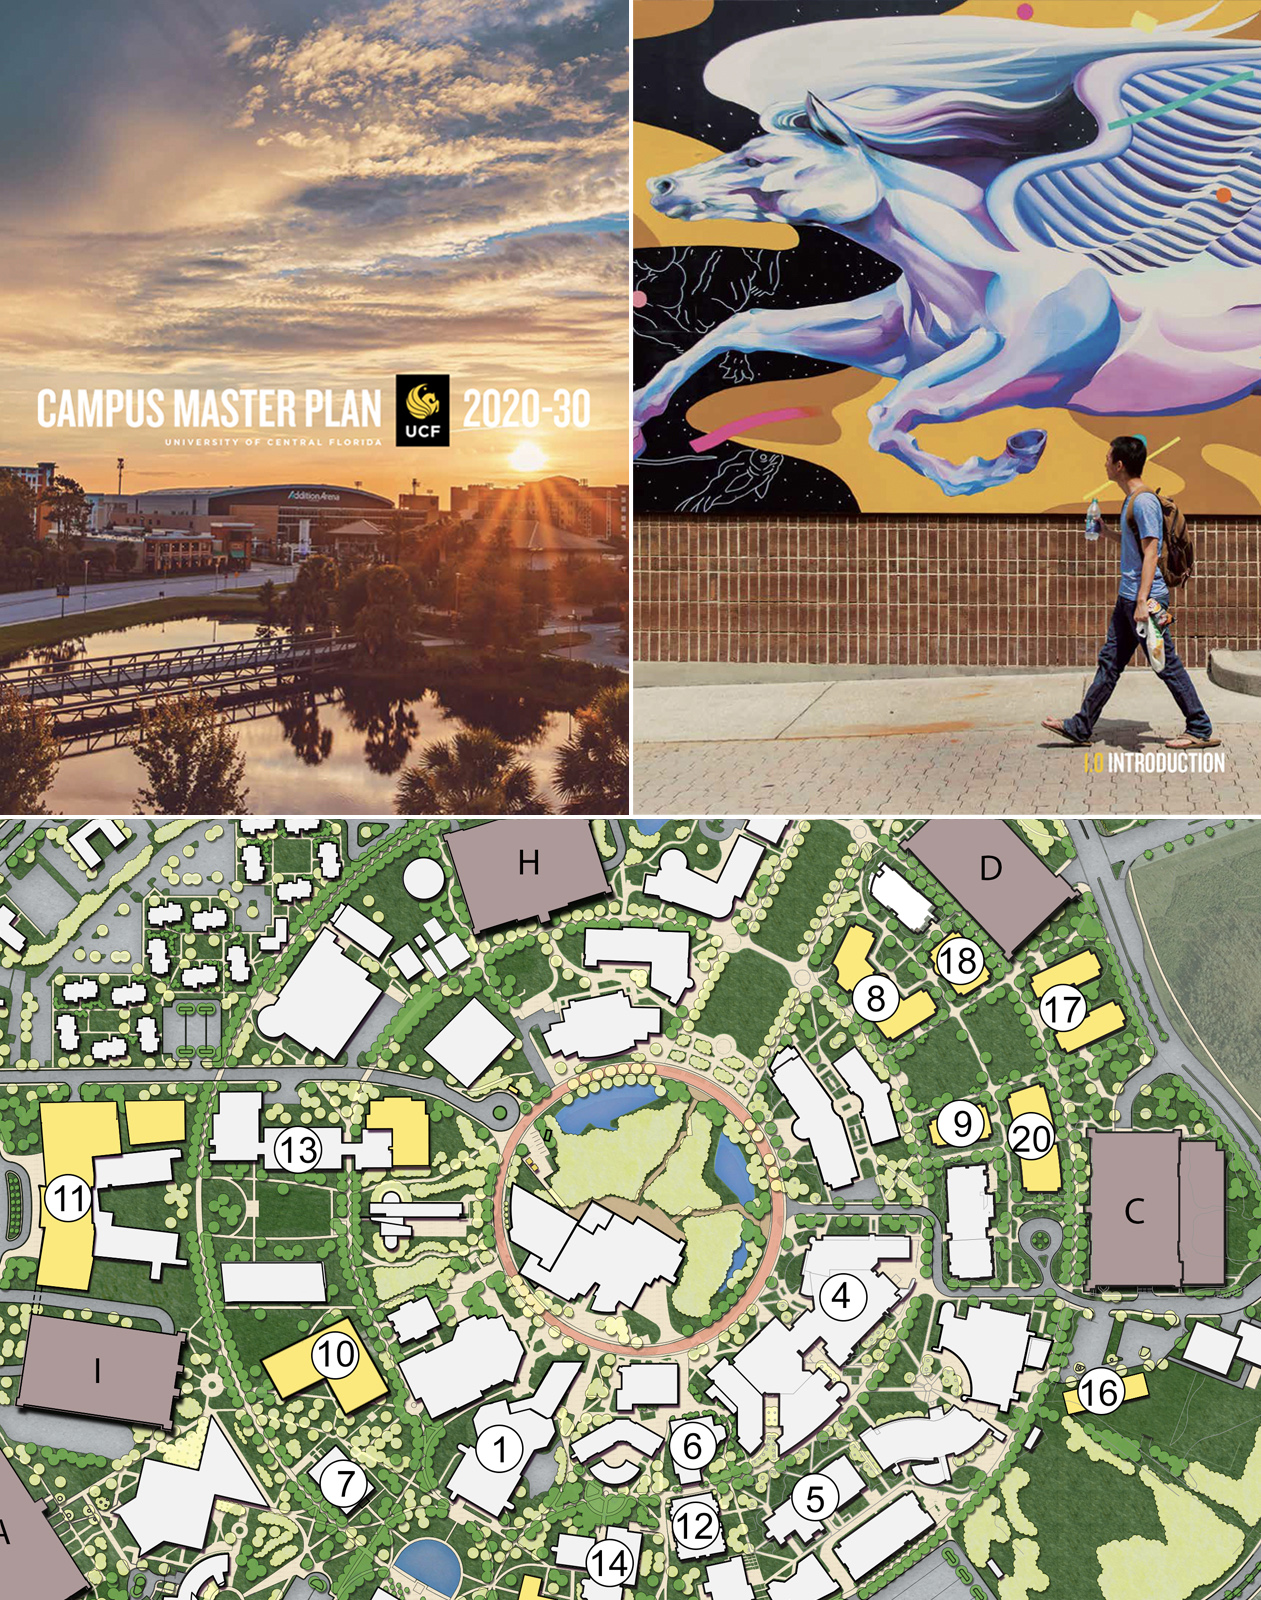 FP&C Releases DRAFT 2020-30 UCF Campus Master Plan